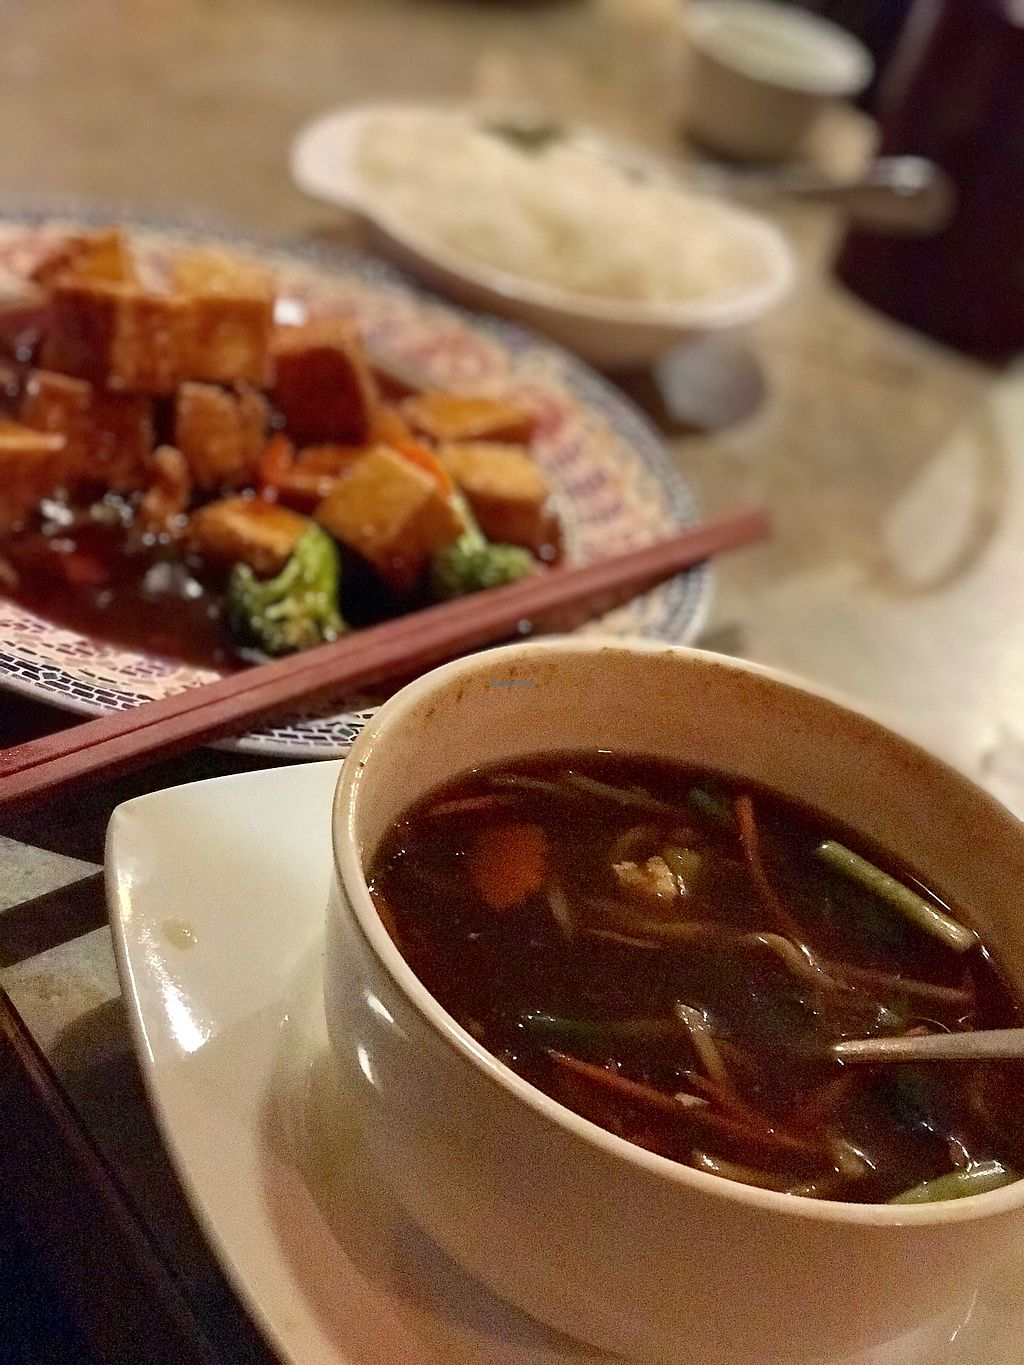 """Photo of Lai Thai Kitchen  by <a href=""""/members/profile/PlantPoweredRN"""">PlantPoweredRN</a> <br/>Vegan-Hot and Sour Soup.  Background is General Tso Tofu <br/> January 3, 2018  - <a href='/contact/abuse/image/33164/342608'>Report</a>"""